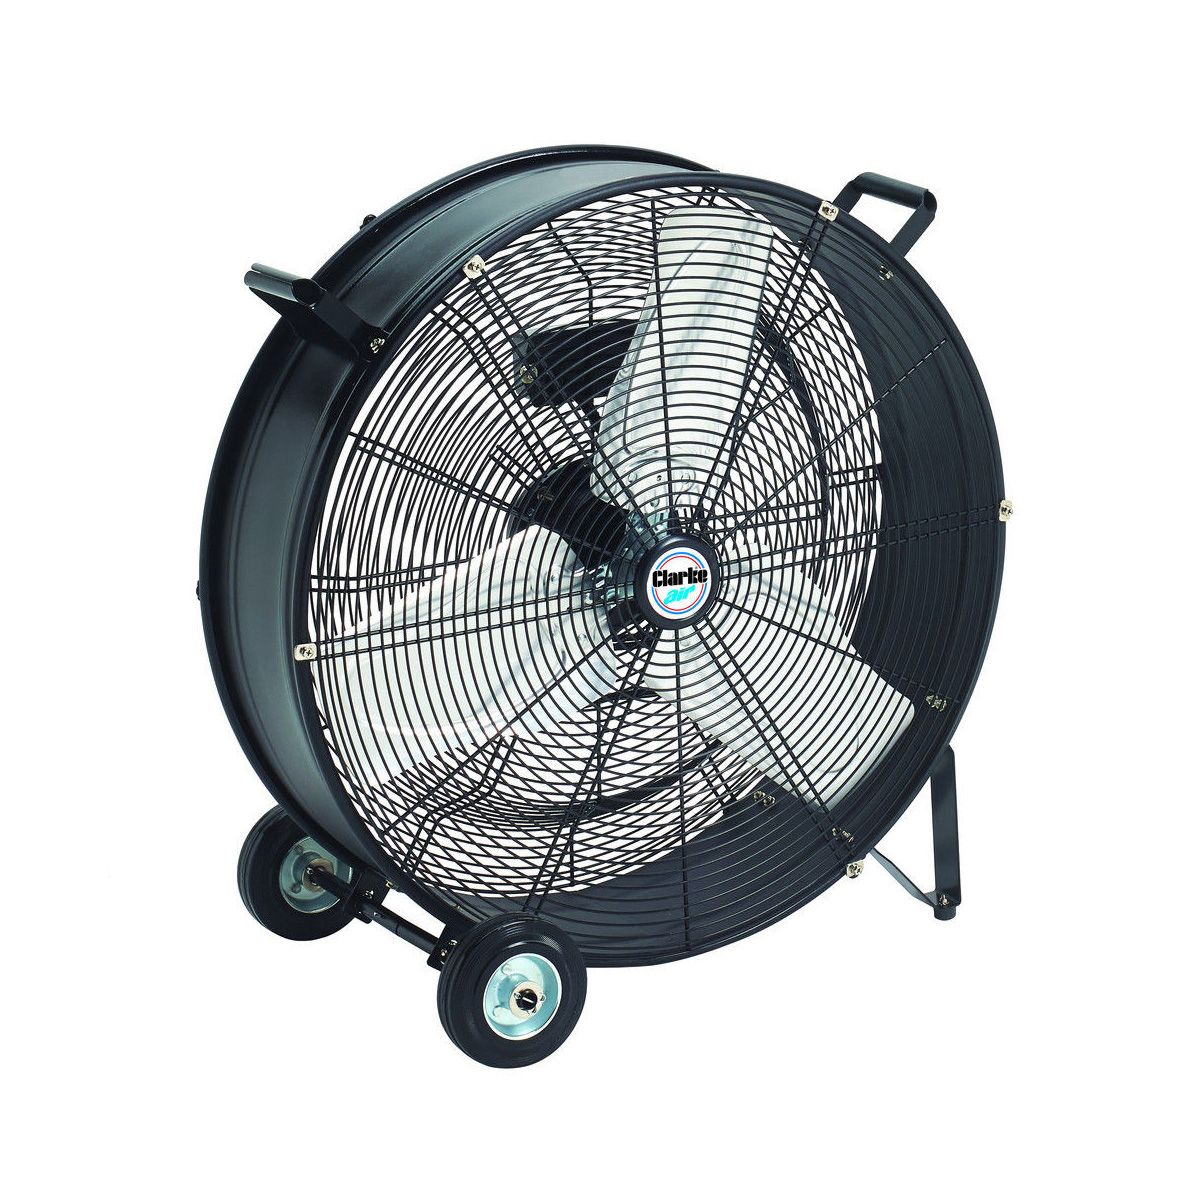 Portable Drum Fan : Clarke cam robust portable electric drum fan cfm